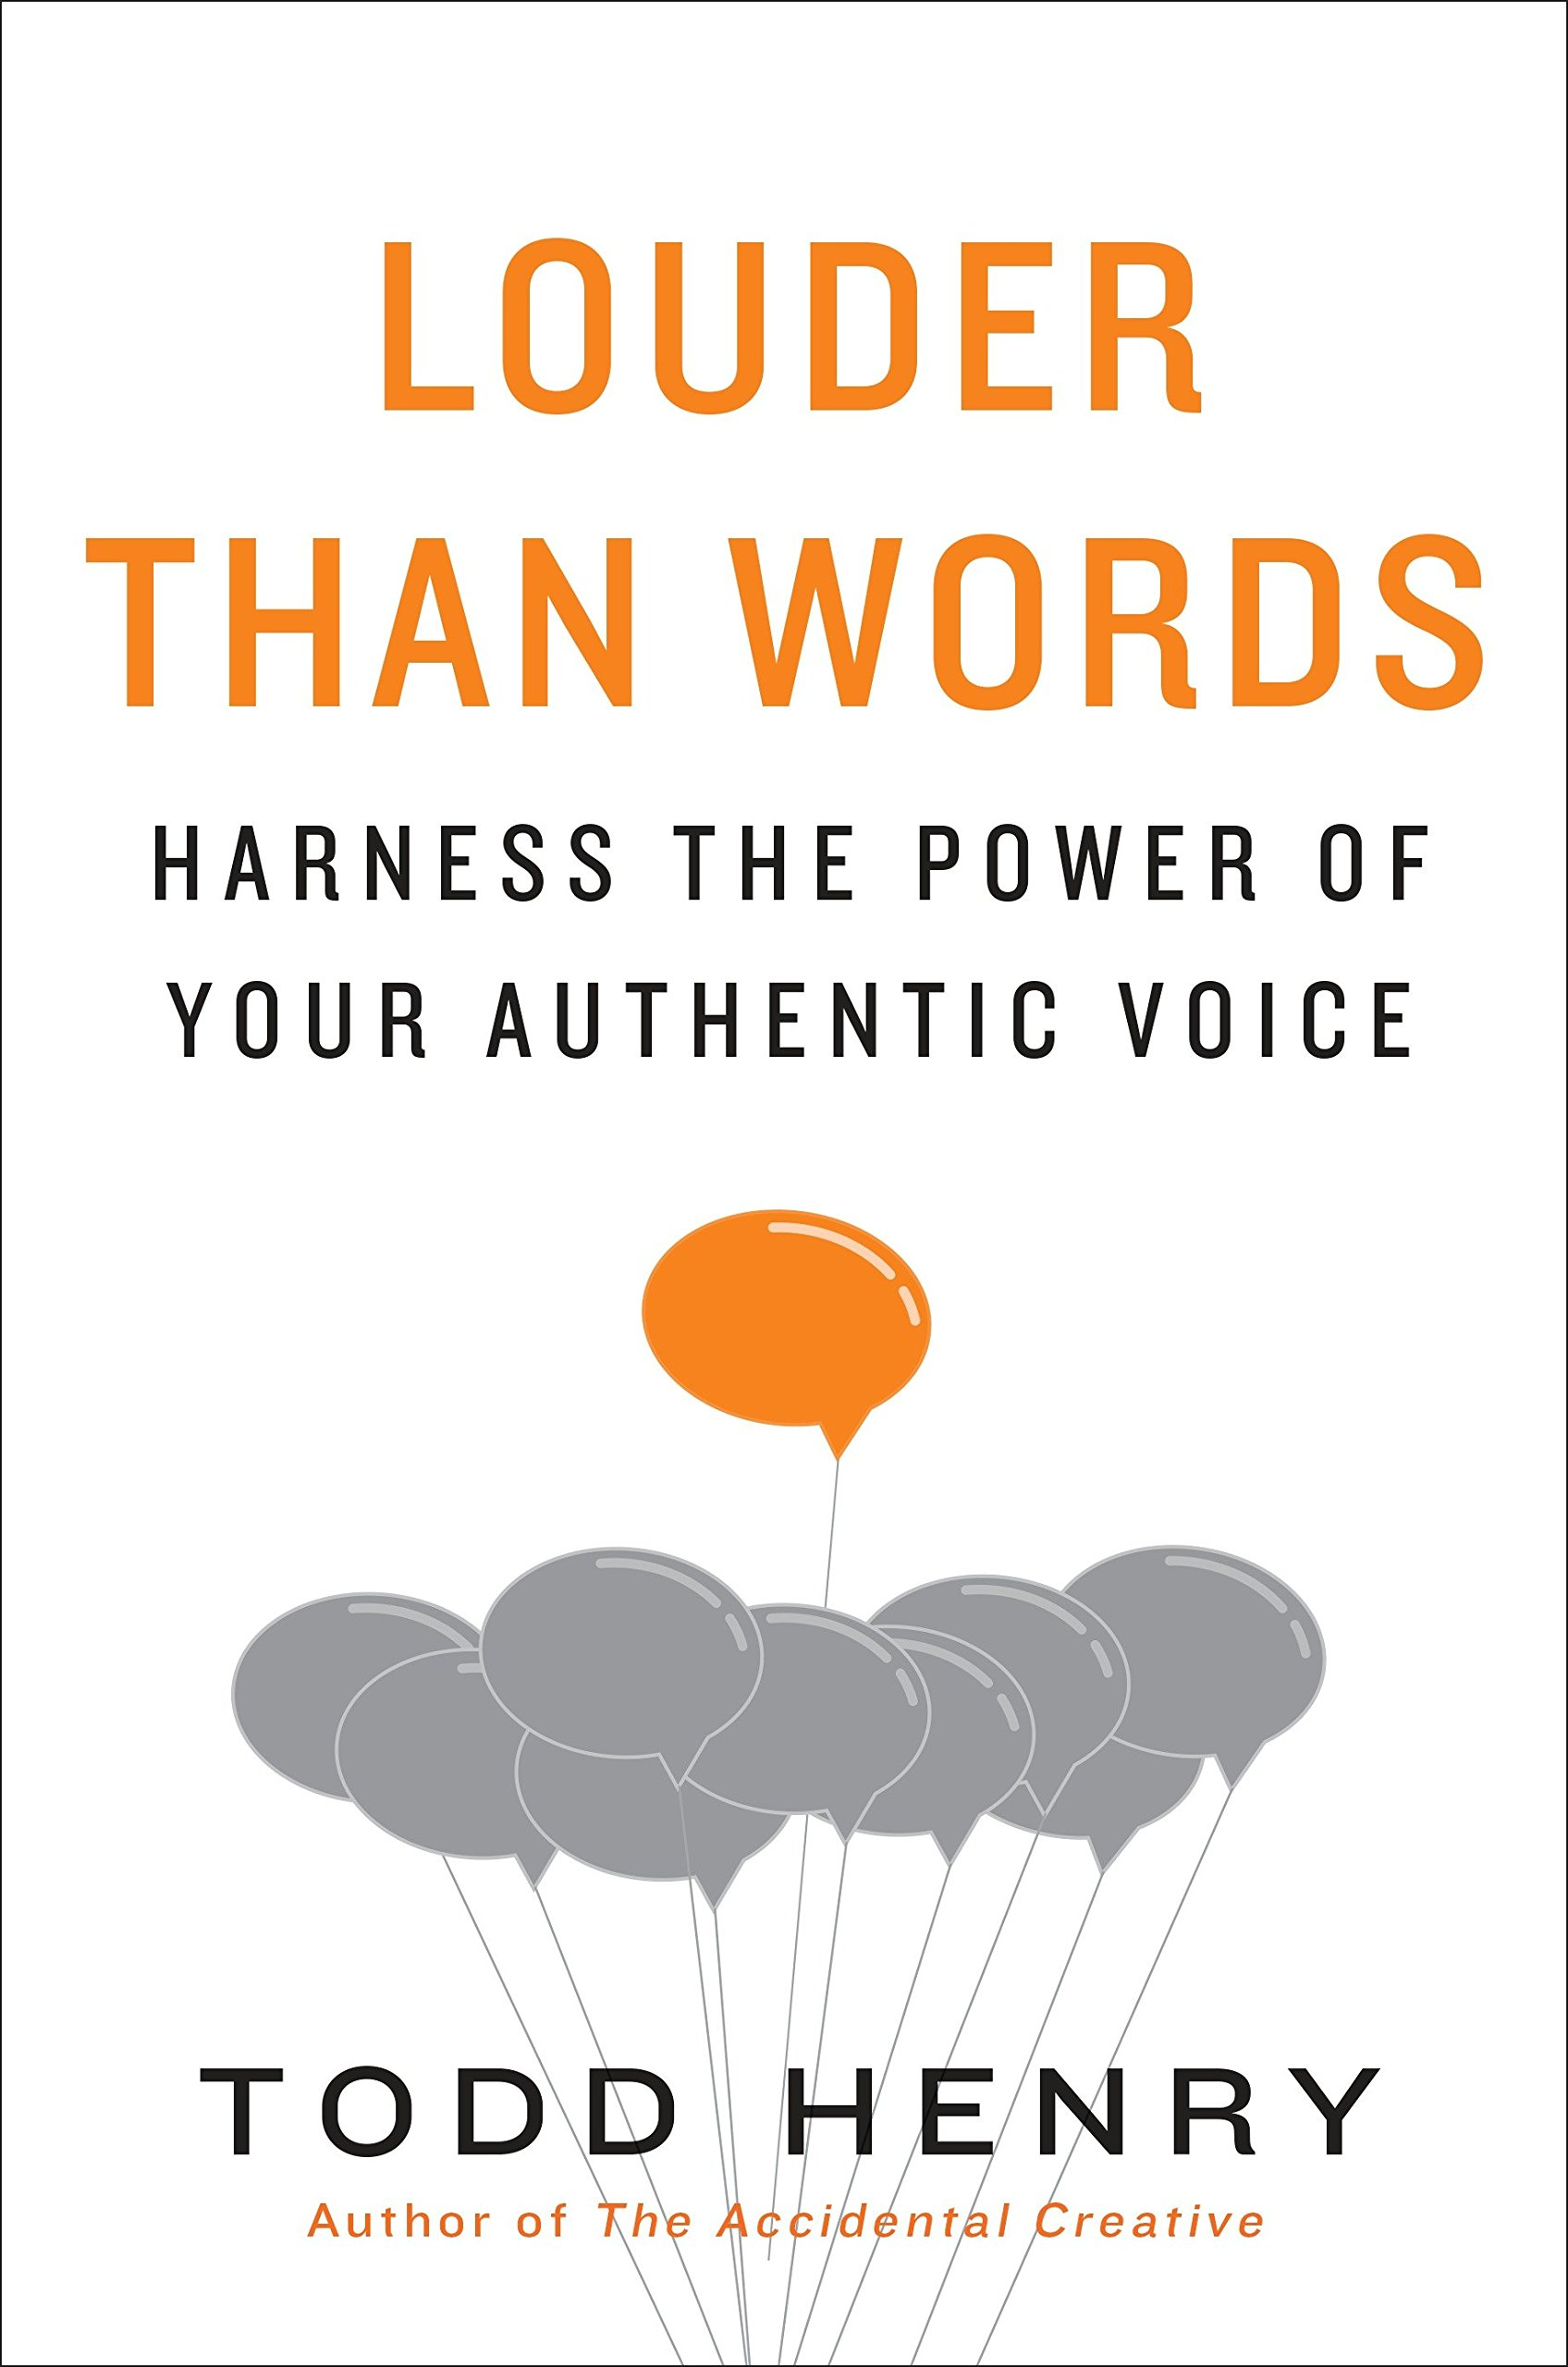 Louder than Words: Harness the Power of Your Authentic Voice: Todd Henry:  9781591847526: Amazon.com: Books